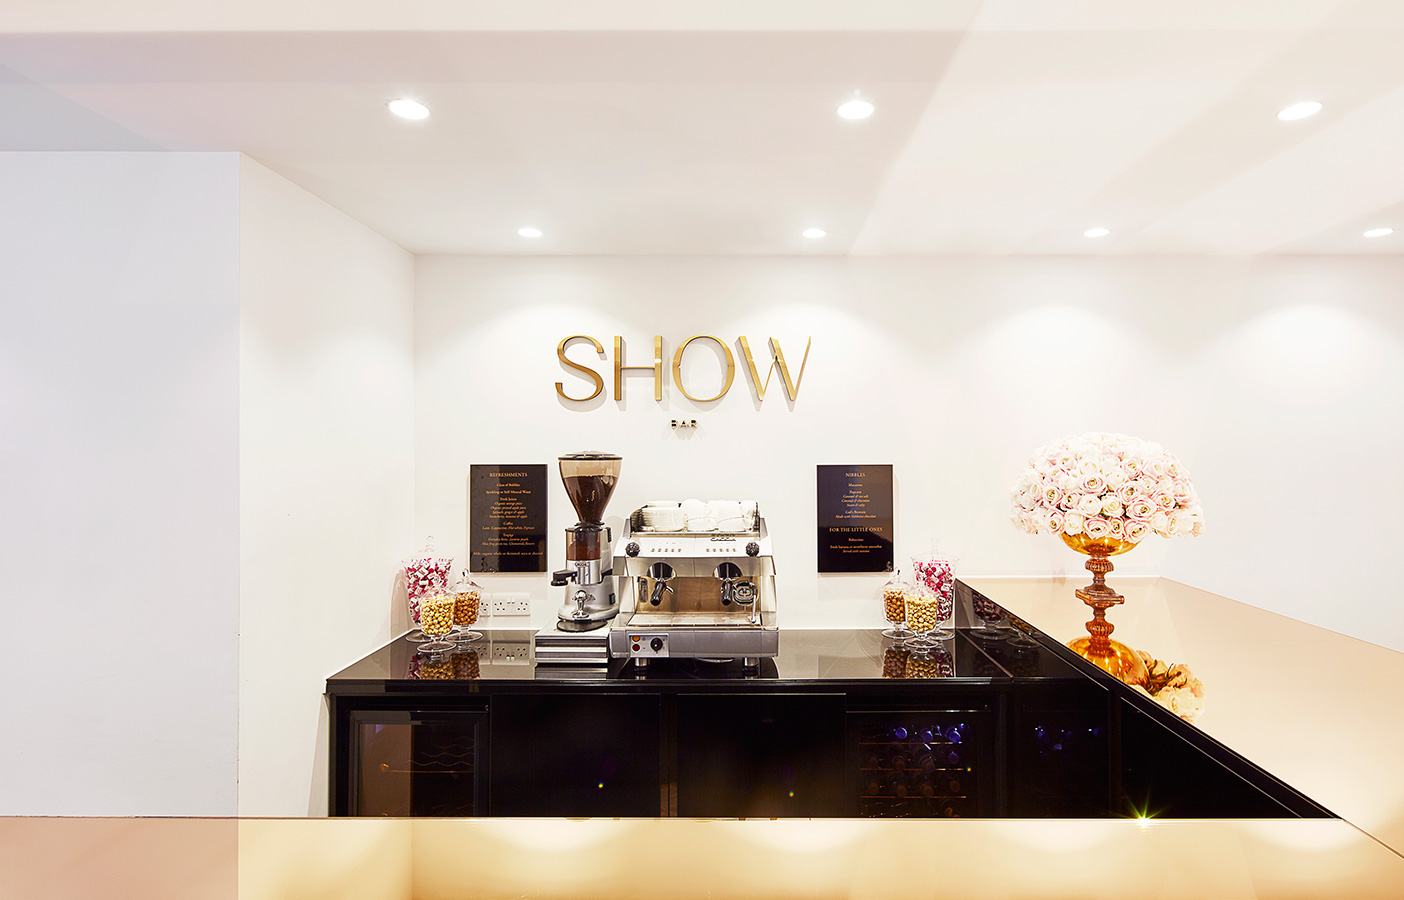 Aldworth James & Bond | SHOW Dry Wimbledon prosecco bar